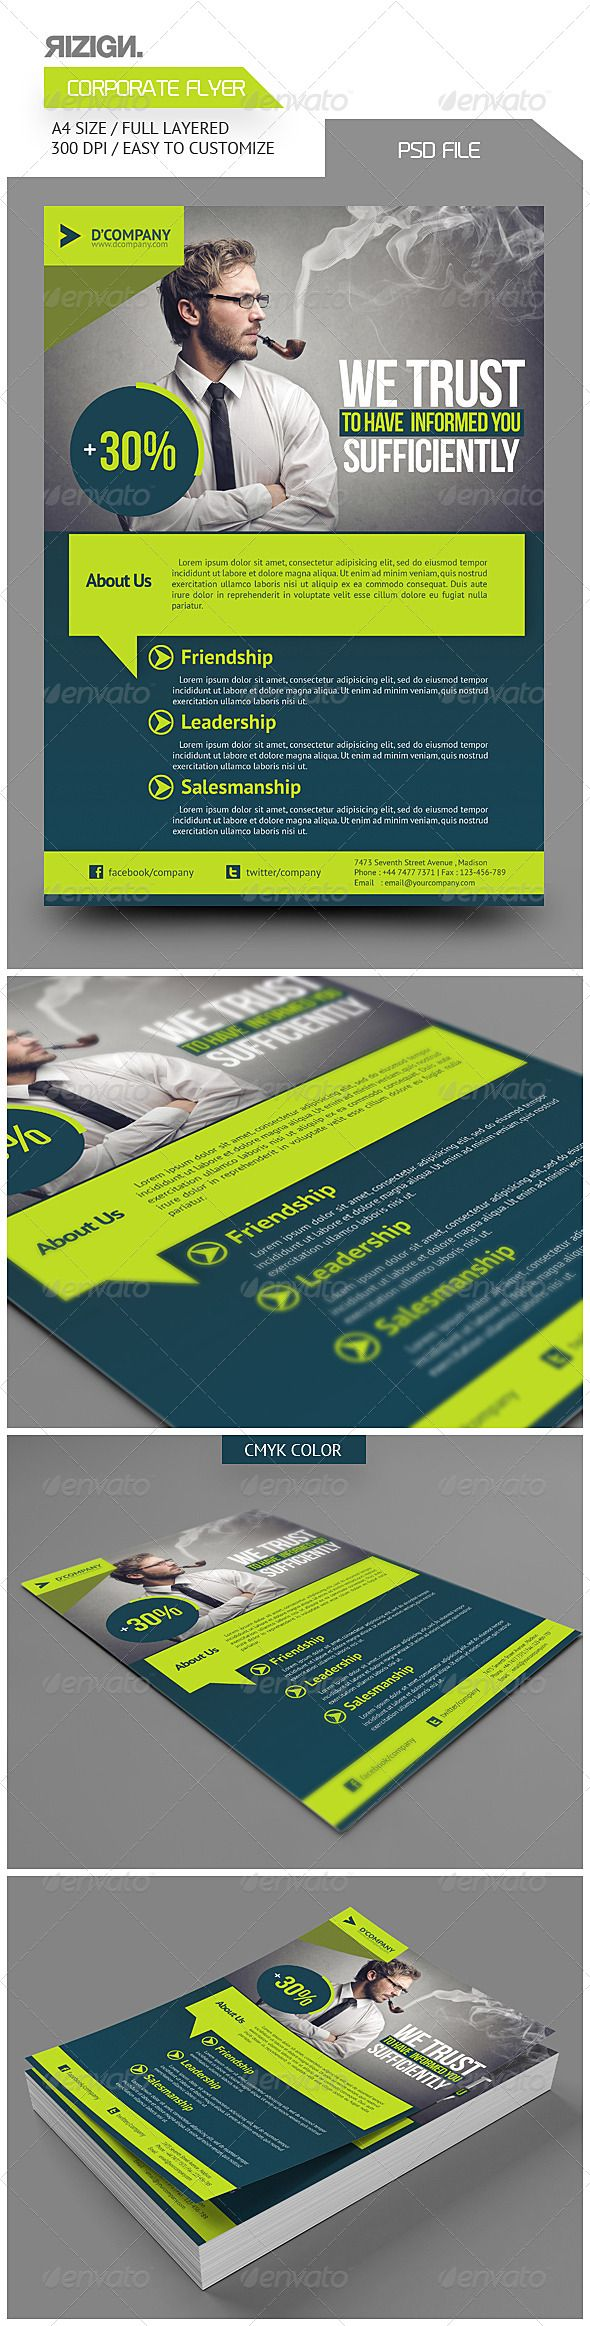 Corporate Flyer #GraphicRiver Corporate Flyer PSD File Easy To Customize All Text Editable With Text Tool A4 Userguide available in package download Images not include Image Link : photodune /item/smoke-a-pipe/4664996 Font Used : Bebas Neue PT Sans Social Logos Download link font available in package download Contact Me Email : rizign@gmail Facebook : Rizign Twitter : Riz Ritzkie Follow For Updates Thanks For Purchasing Created: 7November13